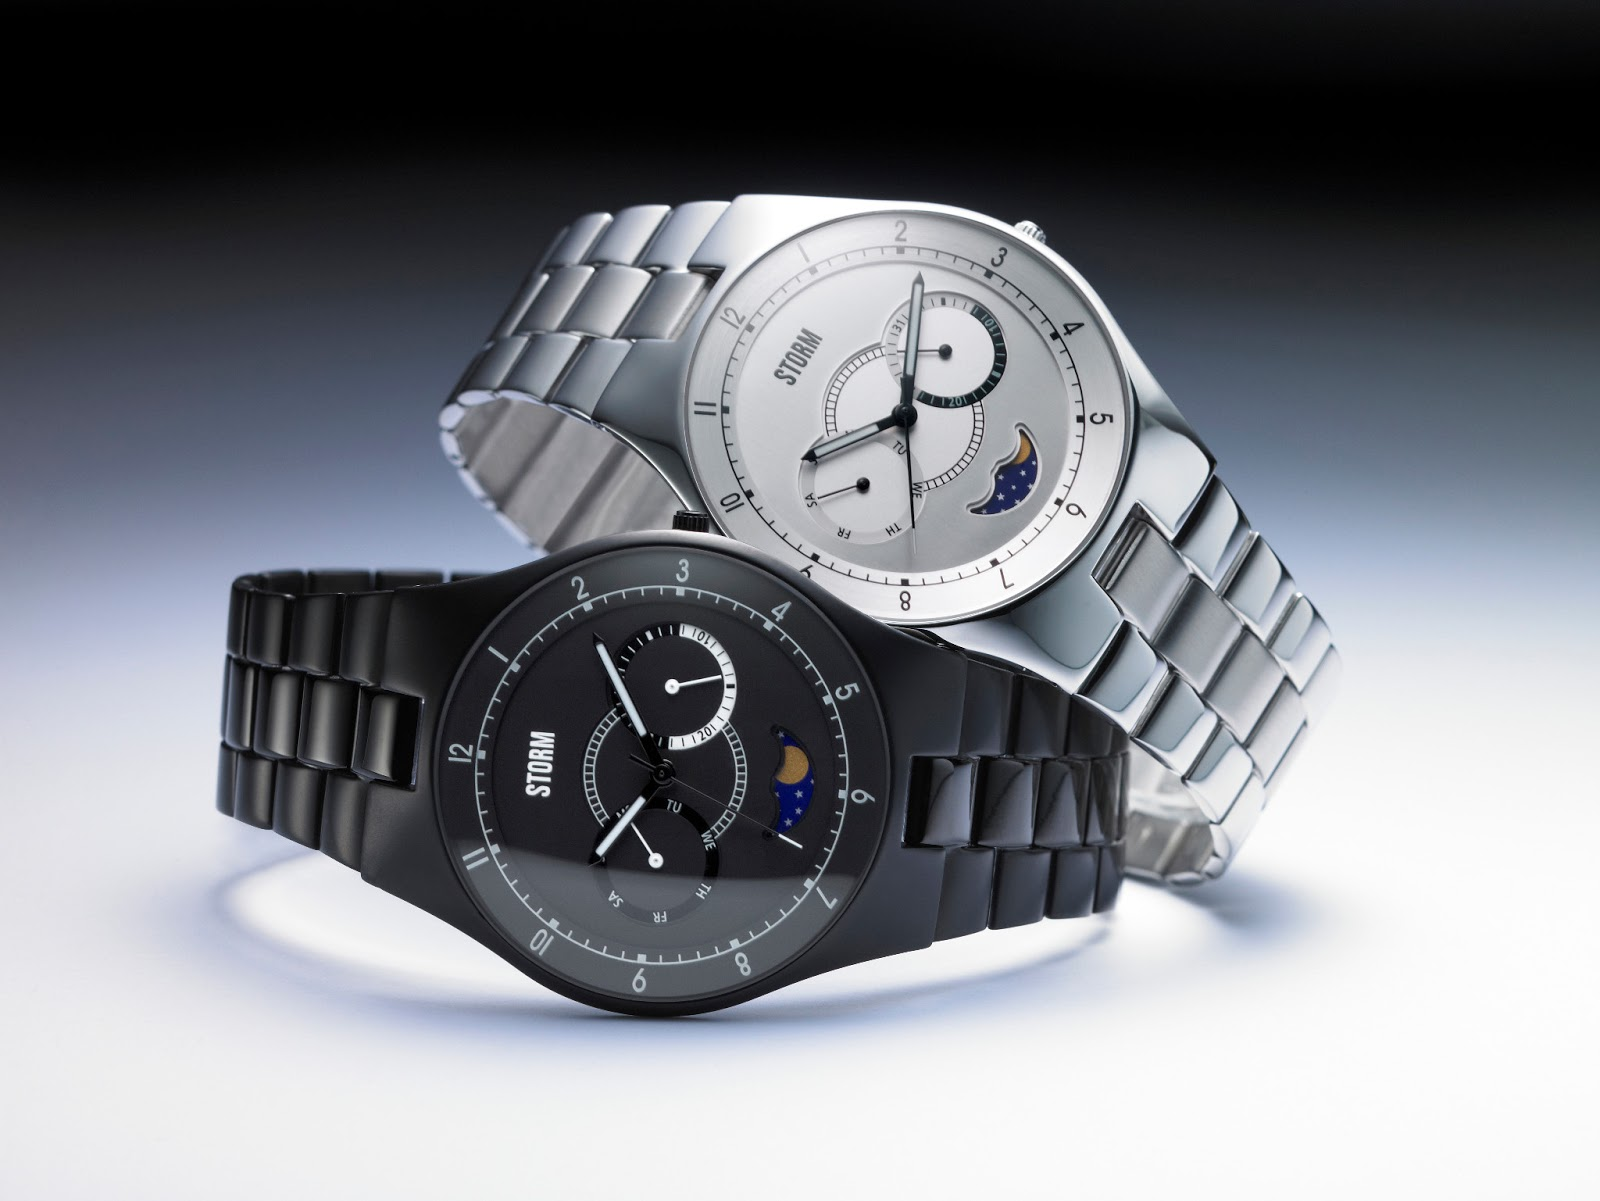 s styling the new watches for ss13